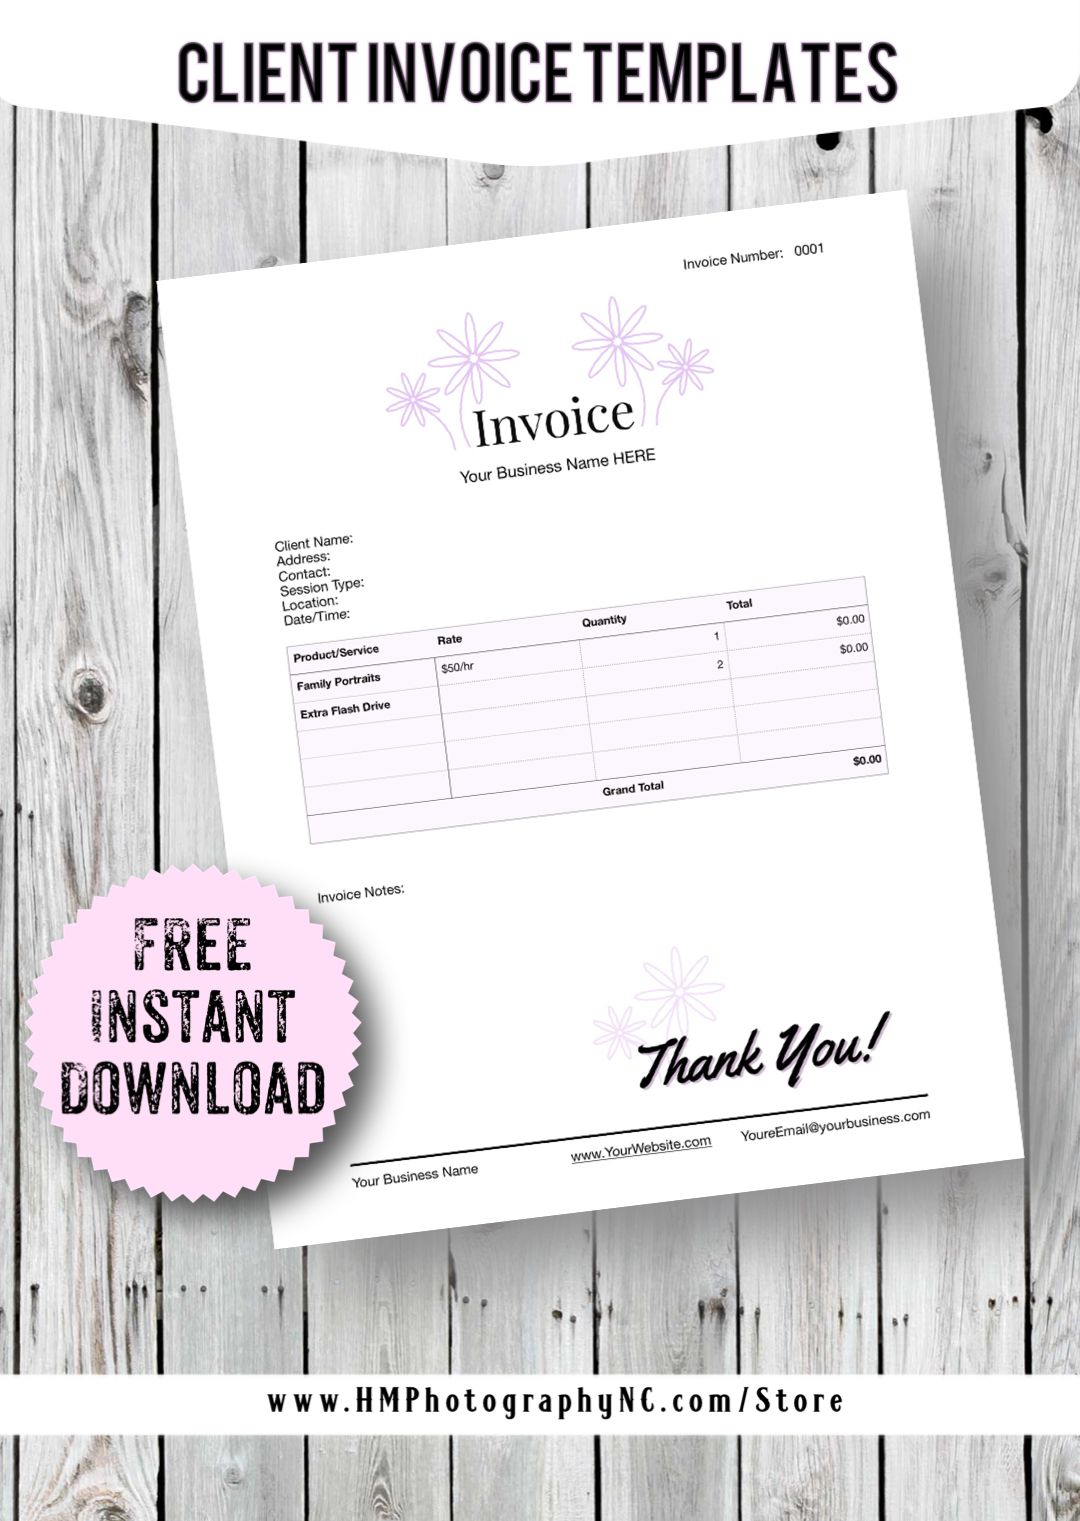 FREE Business Templates Client Invoices/Receipts in 2020